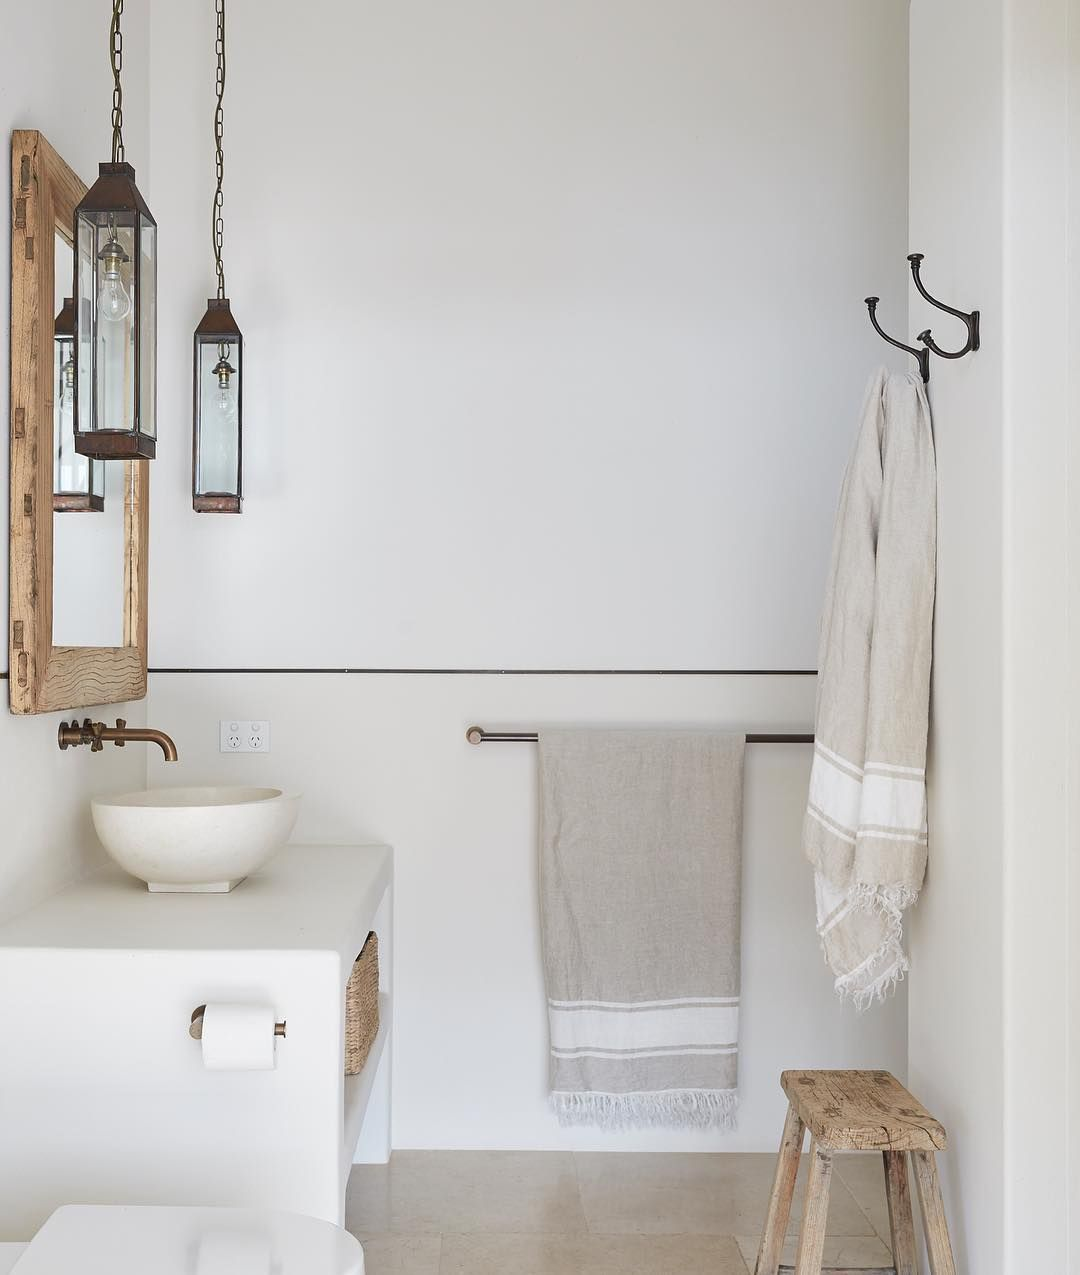 Pin by Odette Fouche on Bathrooms | Pinterest | Bath, Interiors and ...